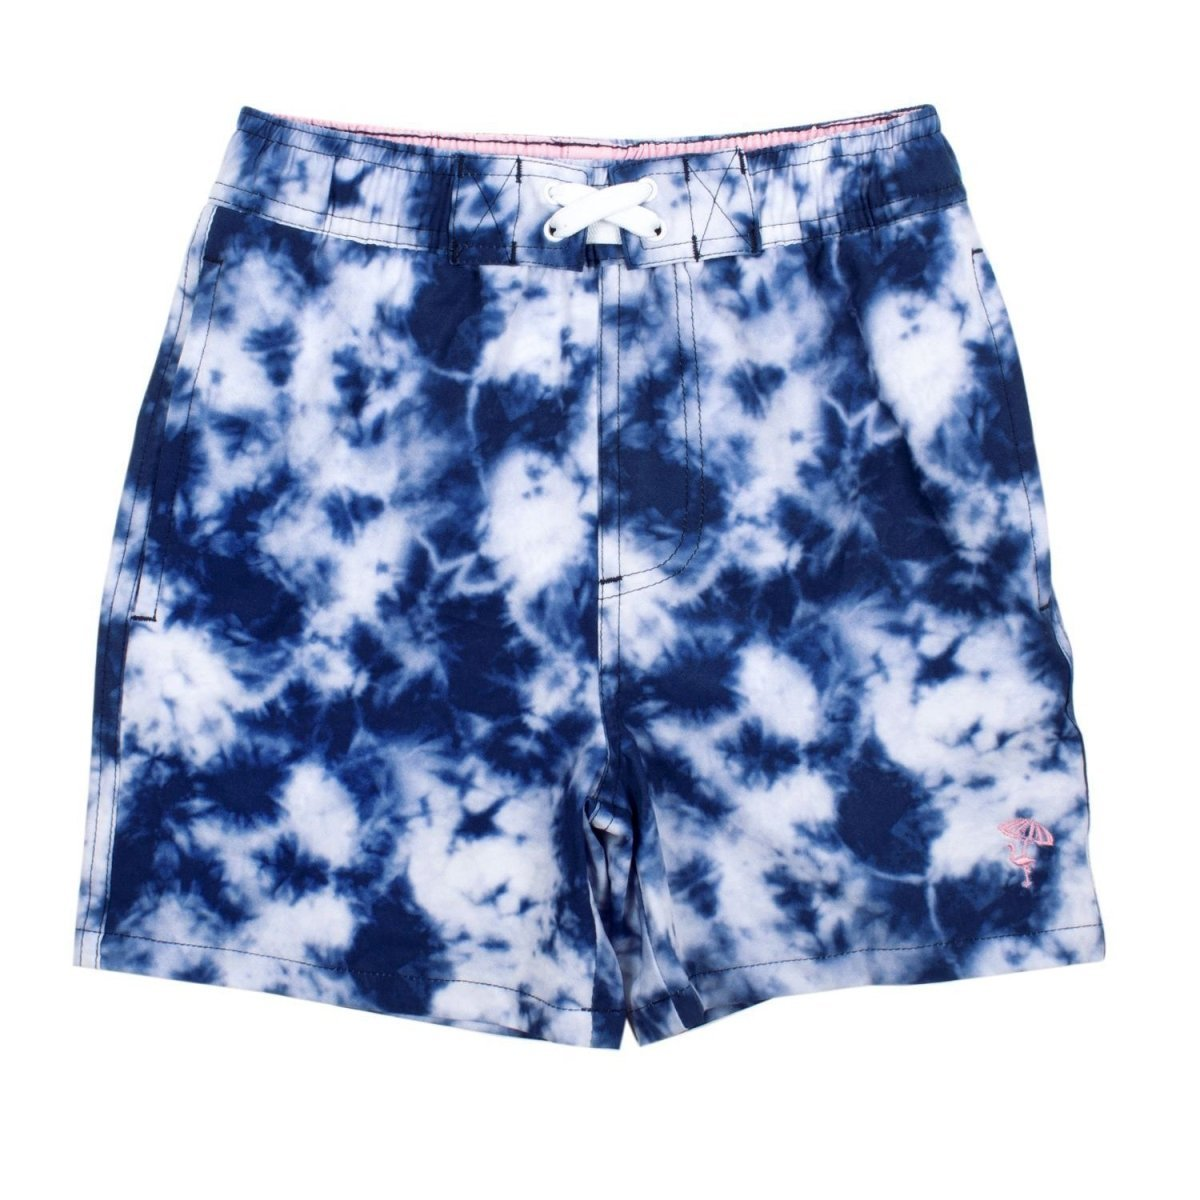 Shade Critters Boys Navy Tie Dye Trunks